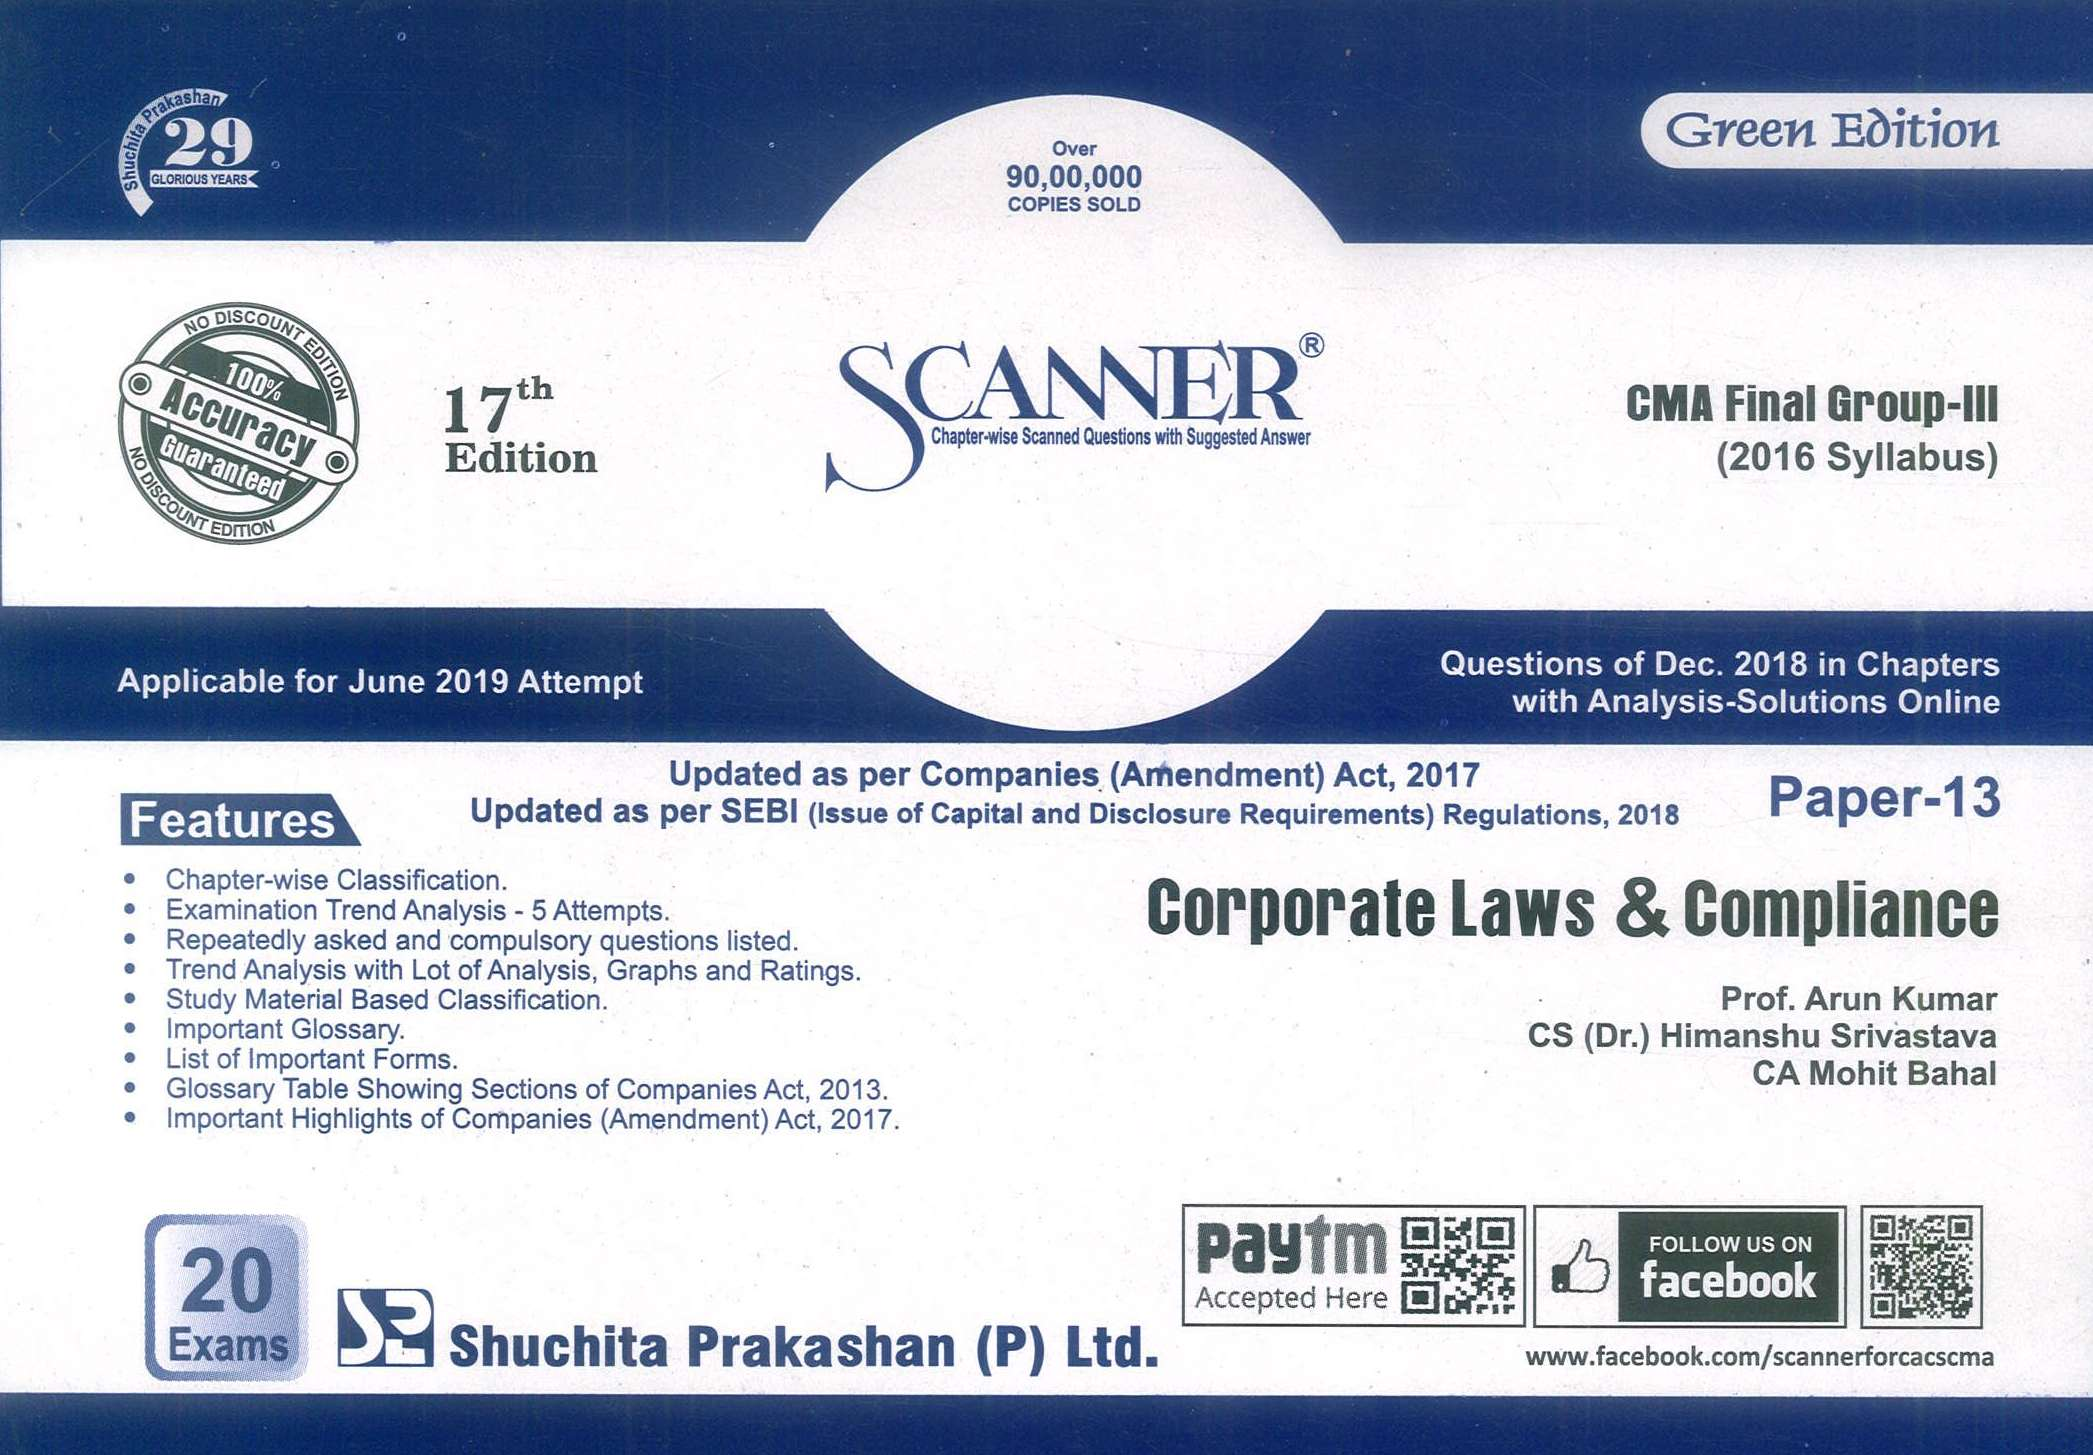 Shuchita Solved Scanner Corporate Law & Compliance for CMA Final Group III Paper 13 New Syllabus for June 2019 Exam by Prof. Arun Kumar and CS CA Rajiv Singh (Shuchita Prakashan) 17 Edition 2019